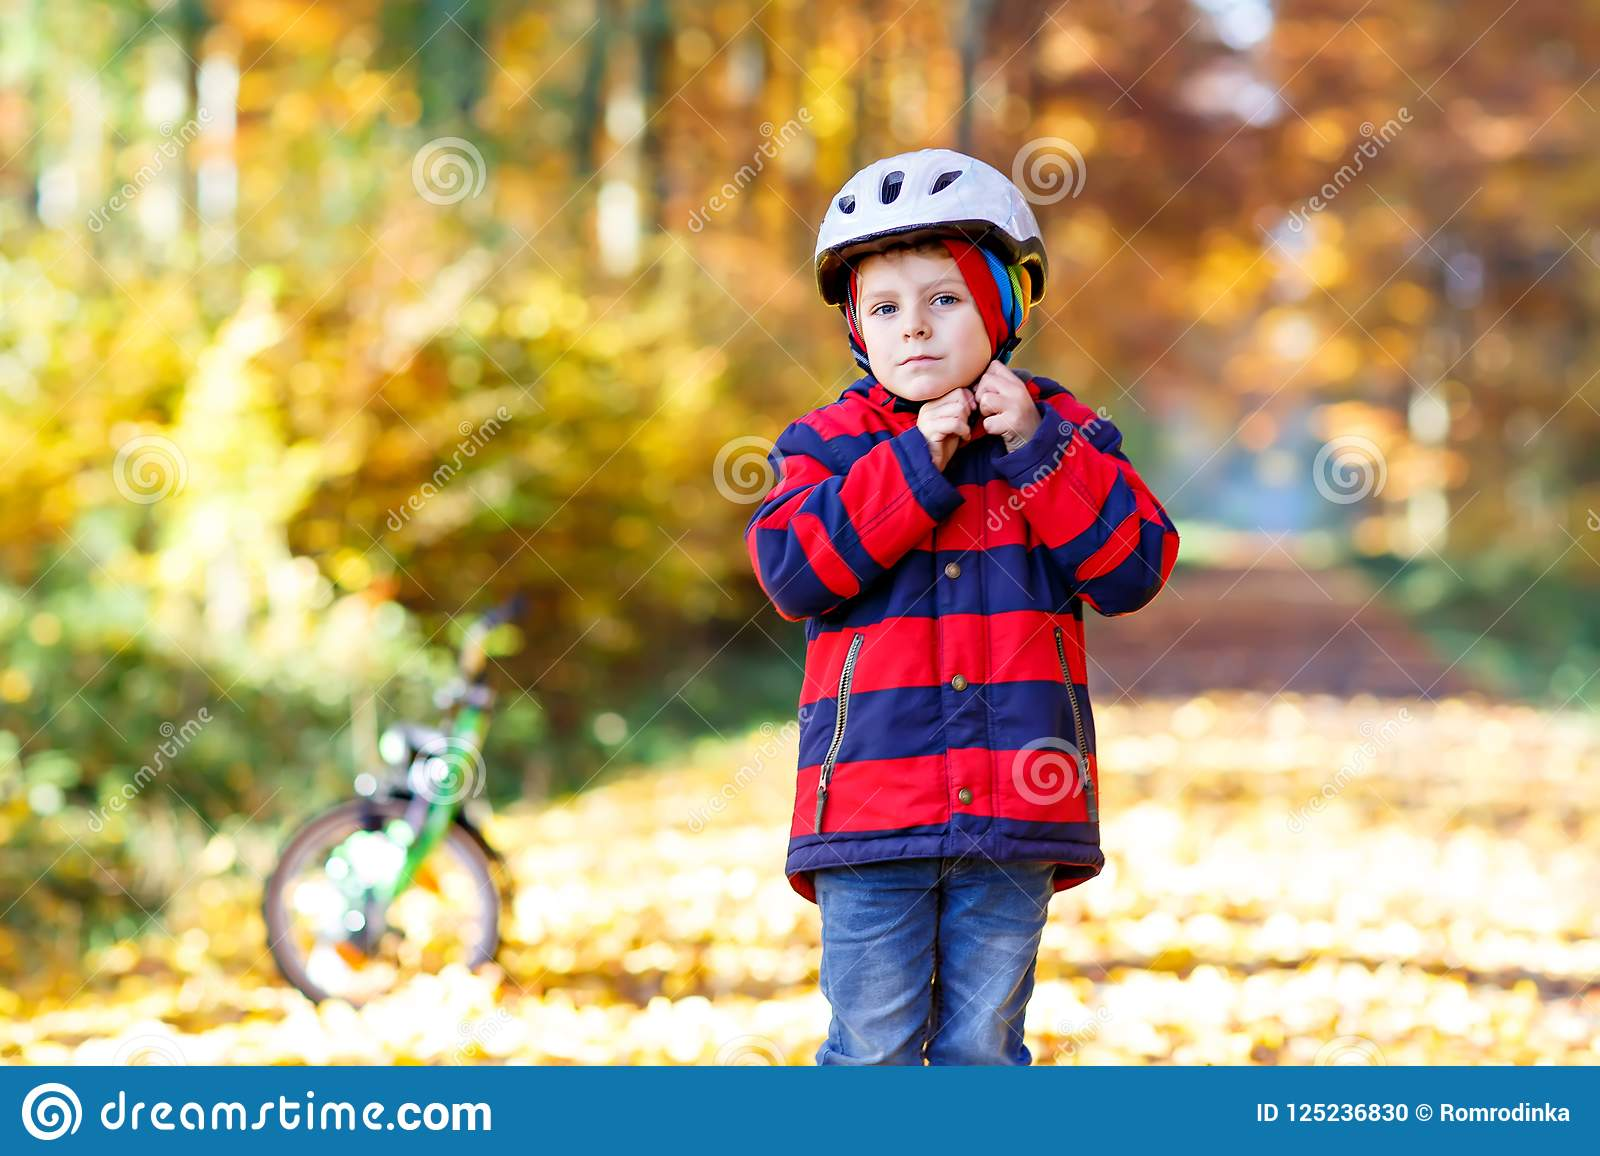 Active child putting safe helmet before cycling on sunny fall day in nature.